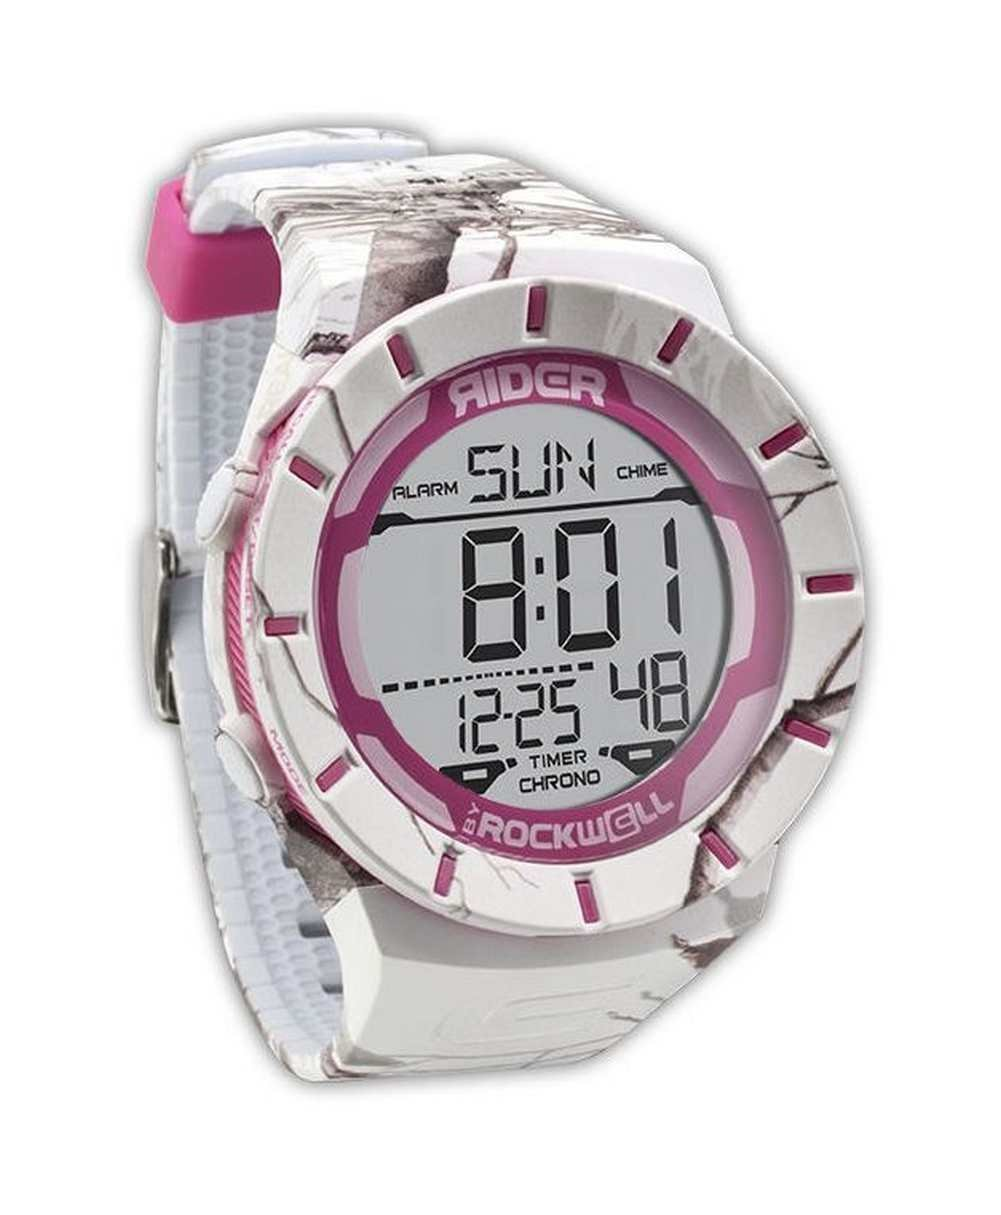 Rockwell Time Coliseum Realtree APS Camo Watch, White/Pink